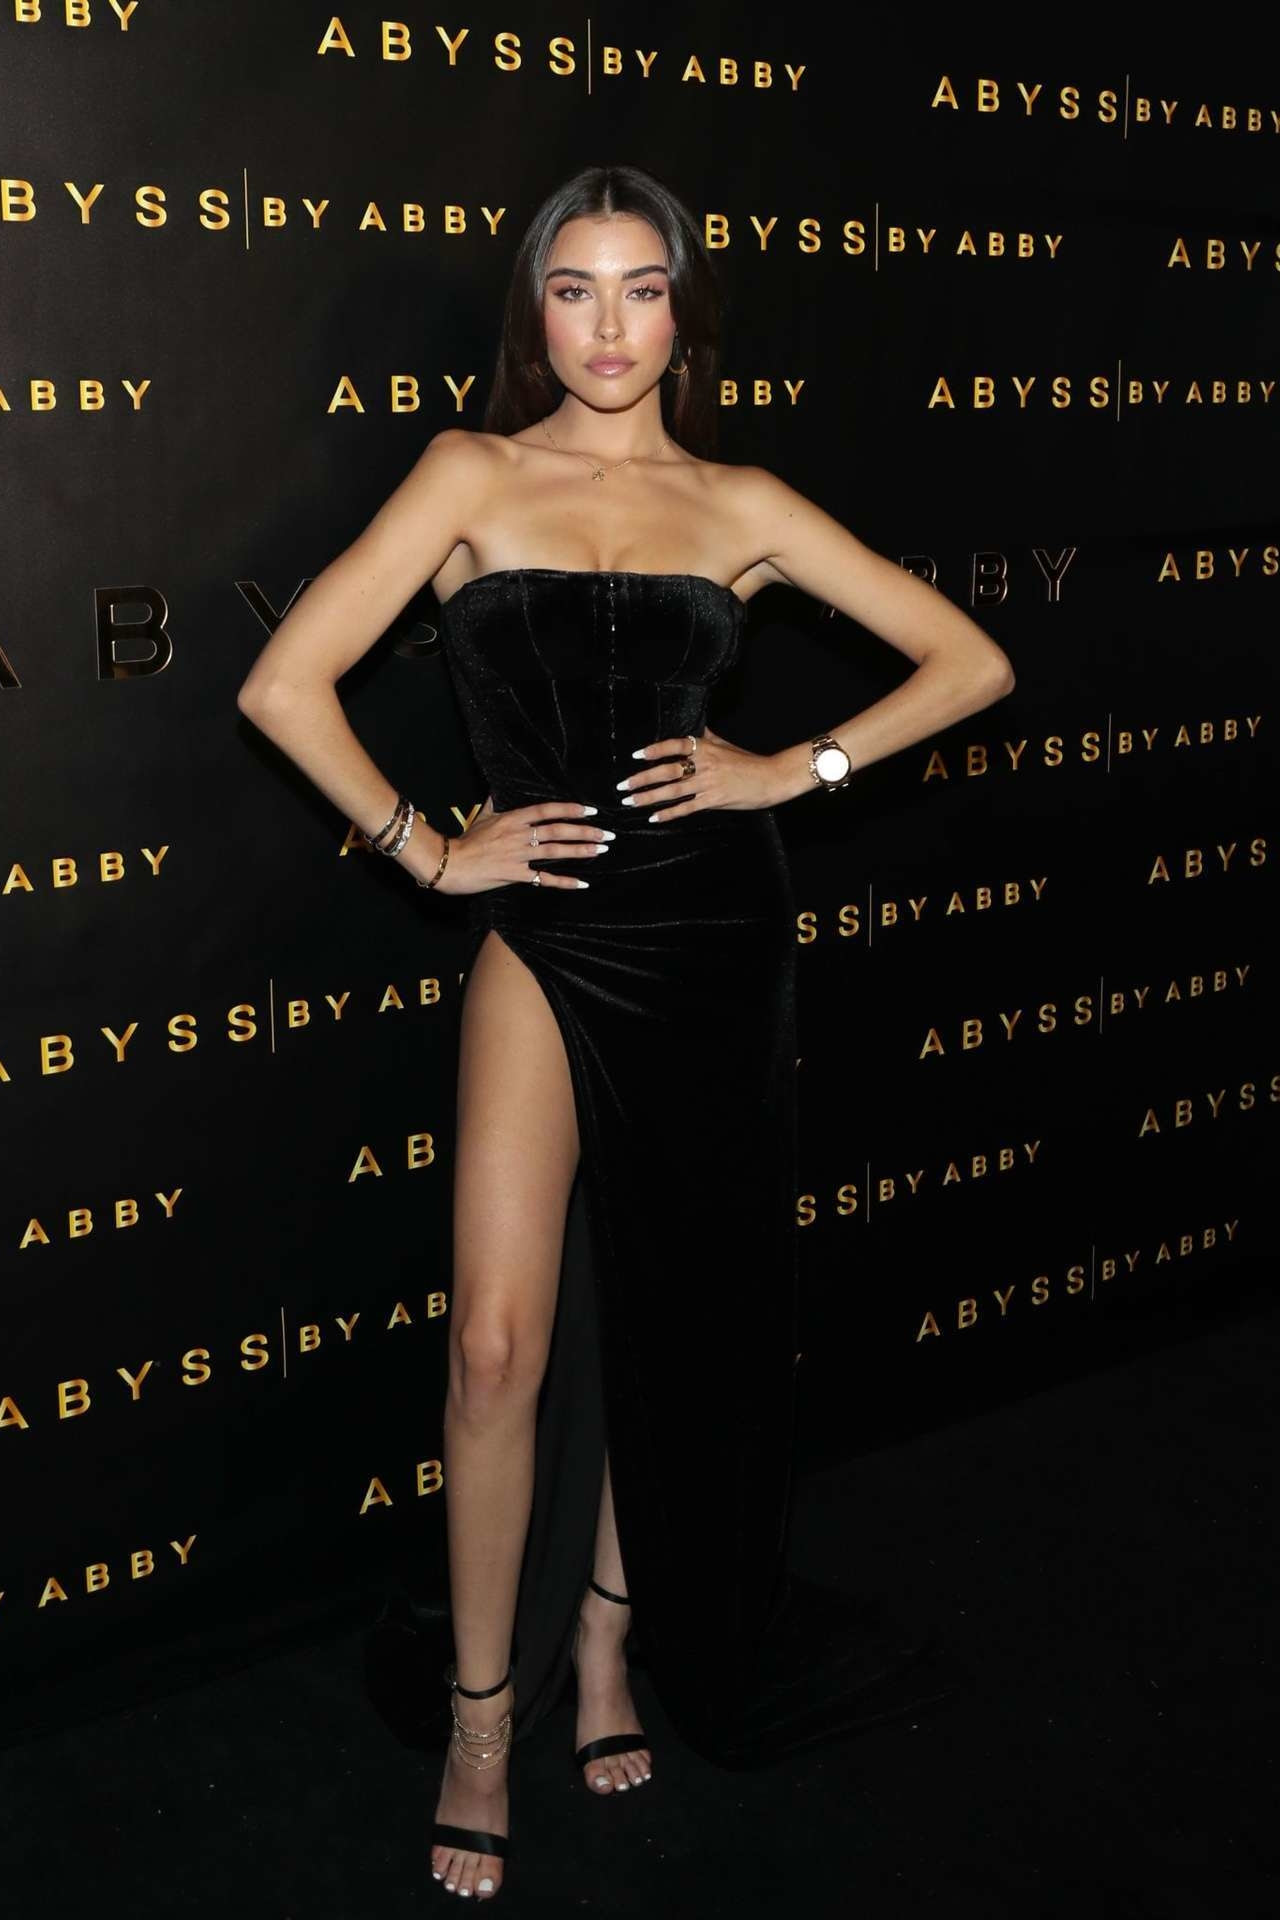 Madison Beer Abyss by Abby Launch September 4, 2019 - Star ...